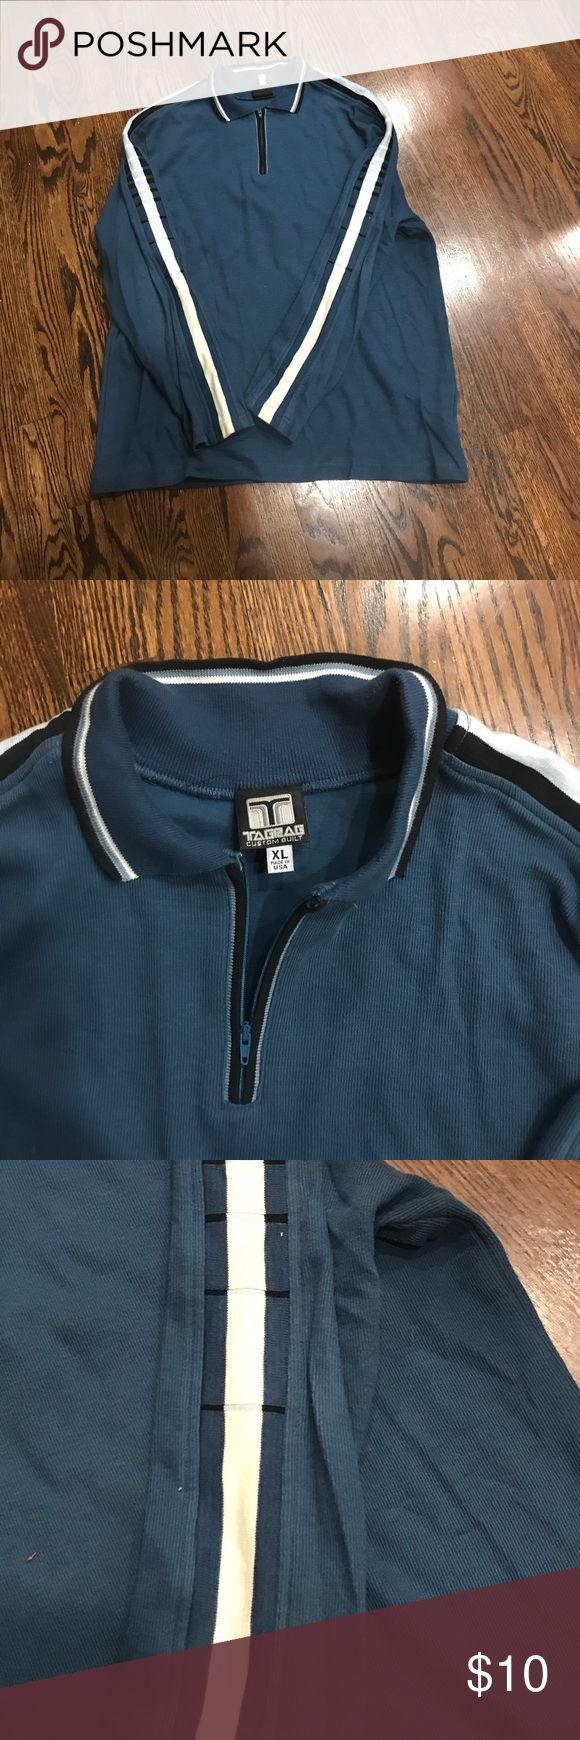 MOVING SALE: men's ski sweater Navy sweater with sleeve detail. Perfect for fall with jeans. Sweaters